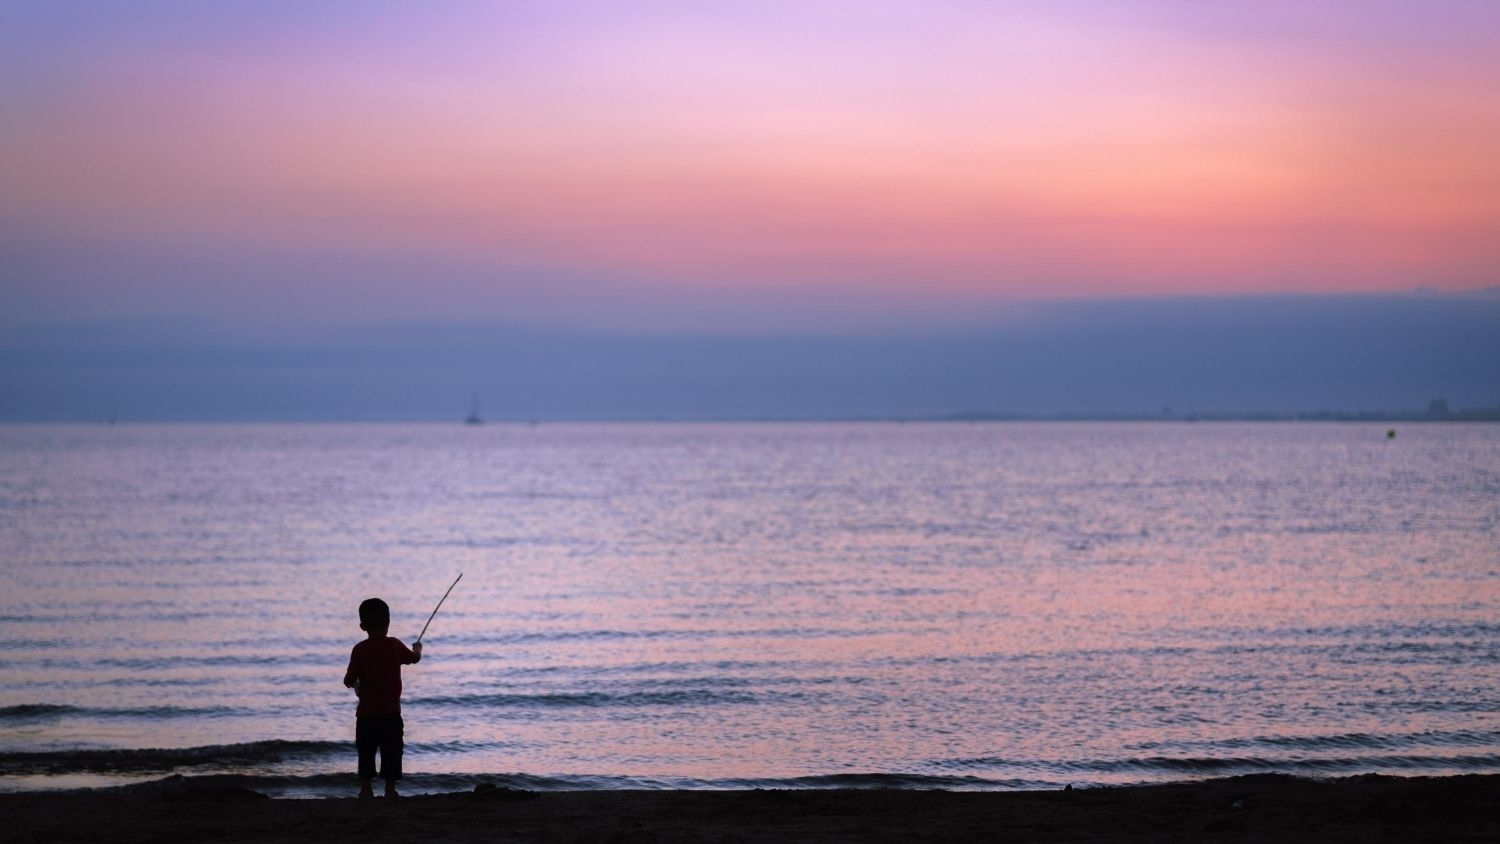 Silhouette of a child fishing.